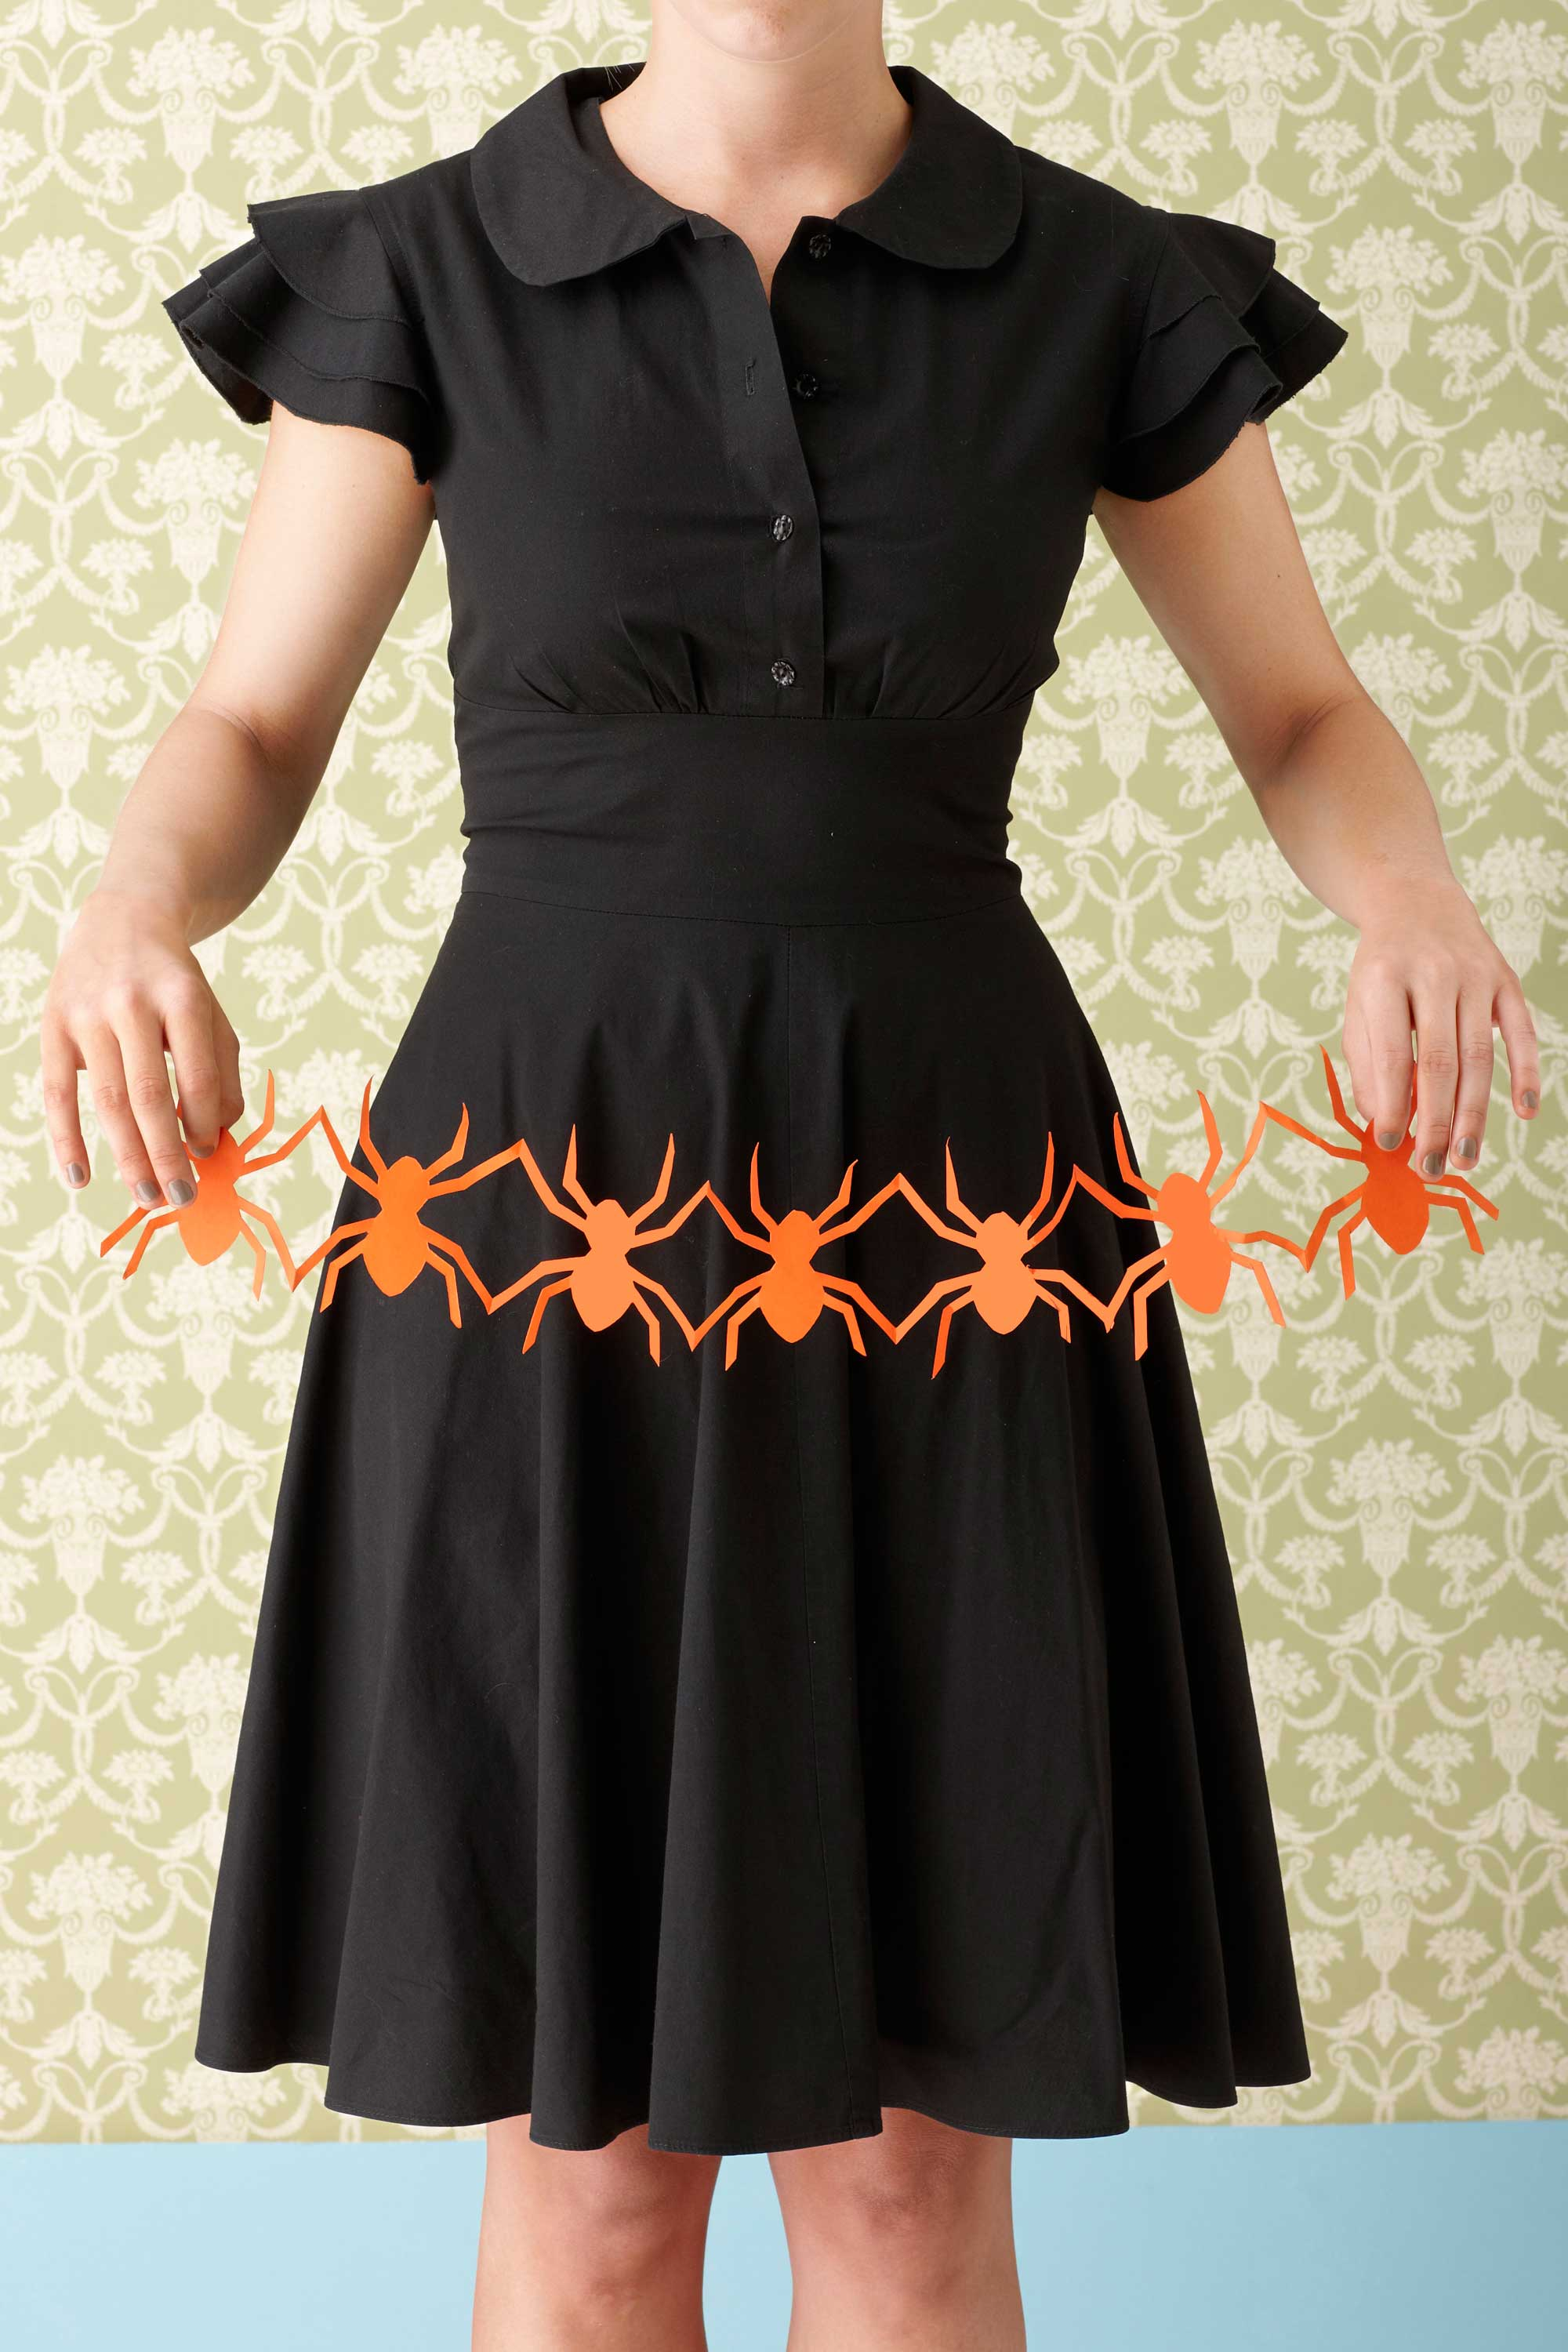 66 easy halloween craft ideas halloween diy craft projects for adults kids - Halloween Spider Craft Ideas